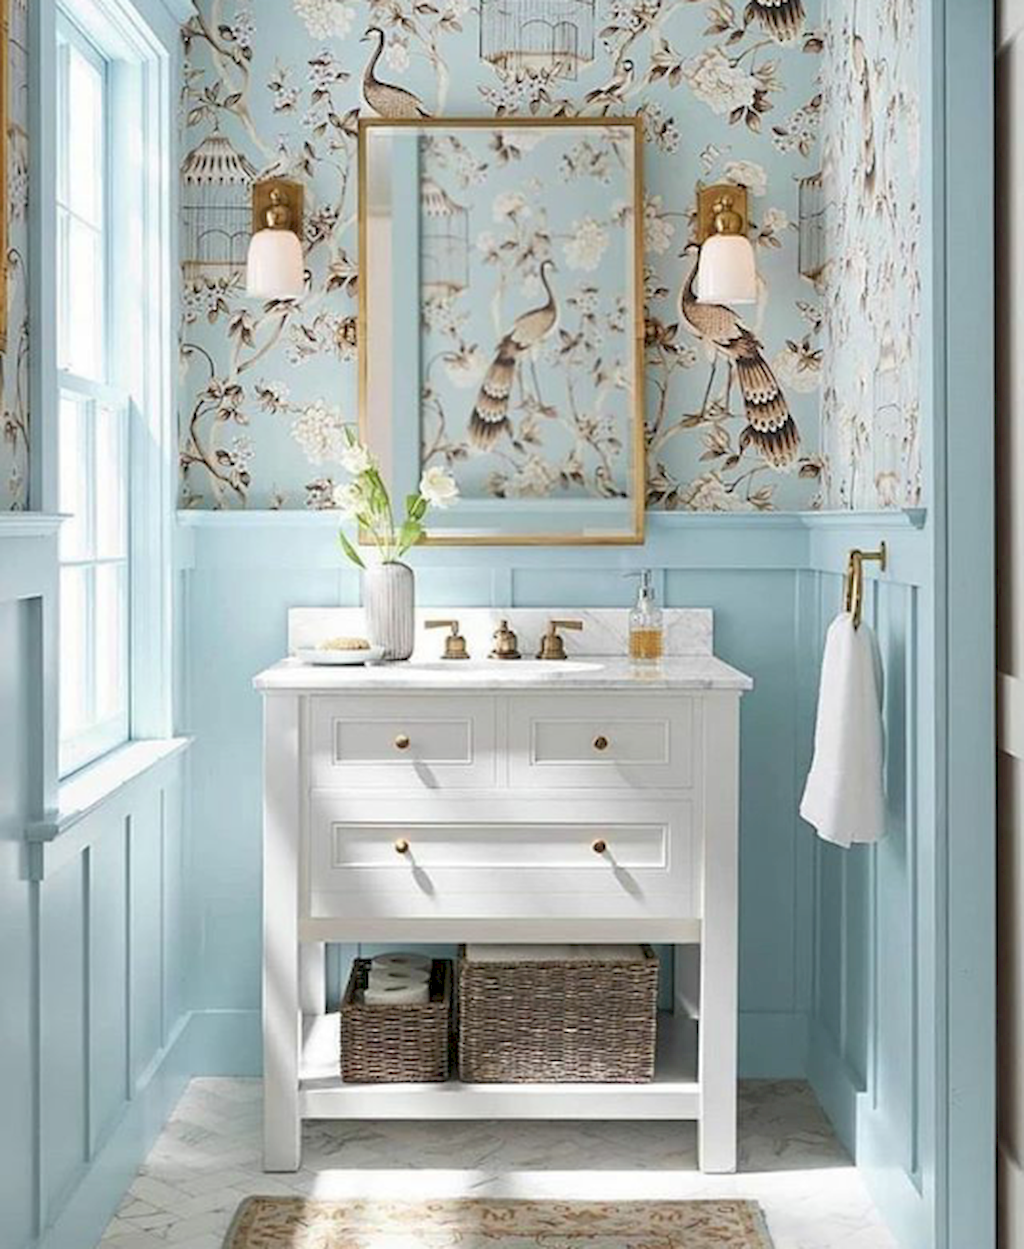 Carta Da Parati Bagno Bathroom Blue With Chinoiserie Wall Paper Gold Lampirror White Sink Baby Pastel